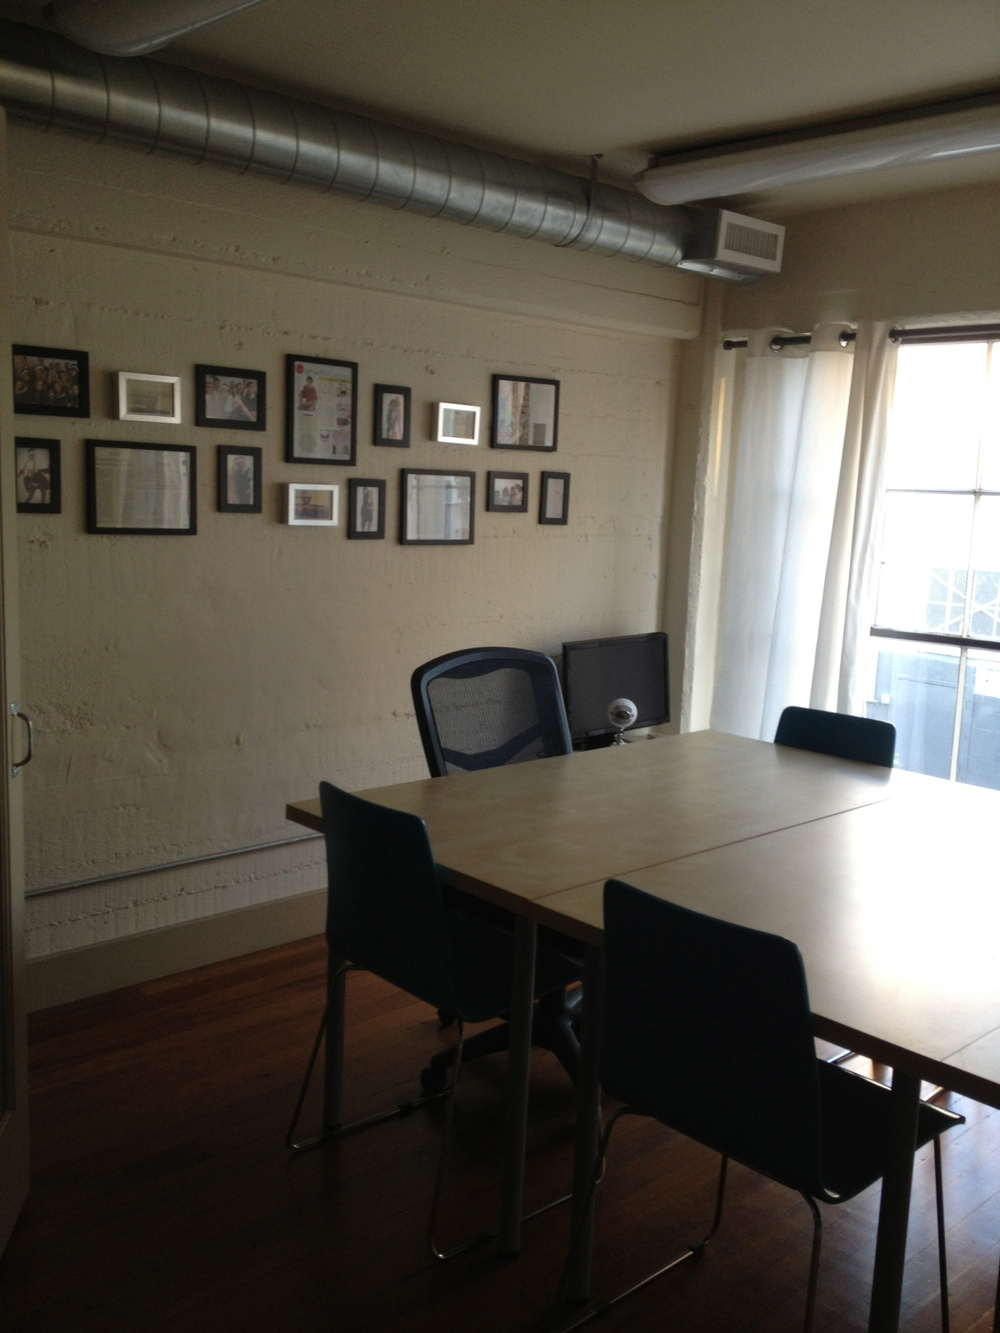 Our new conference room